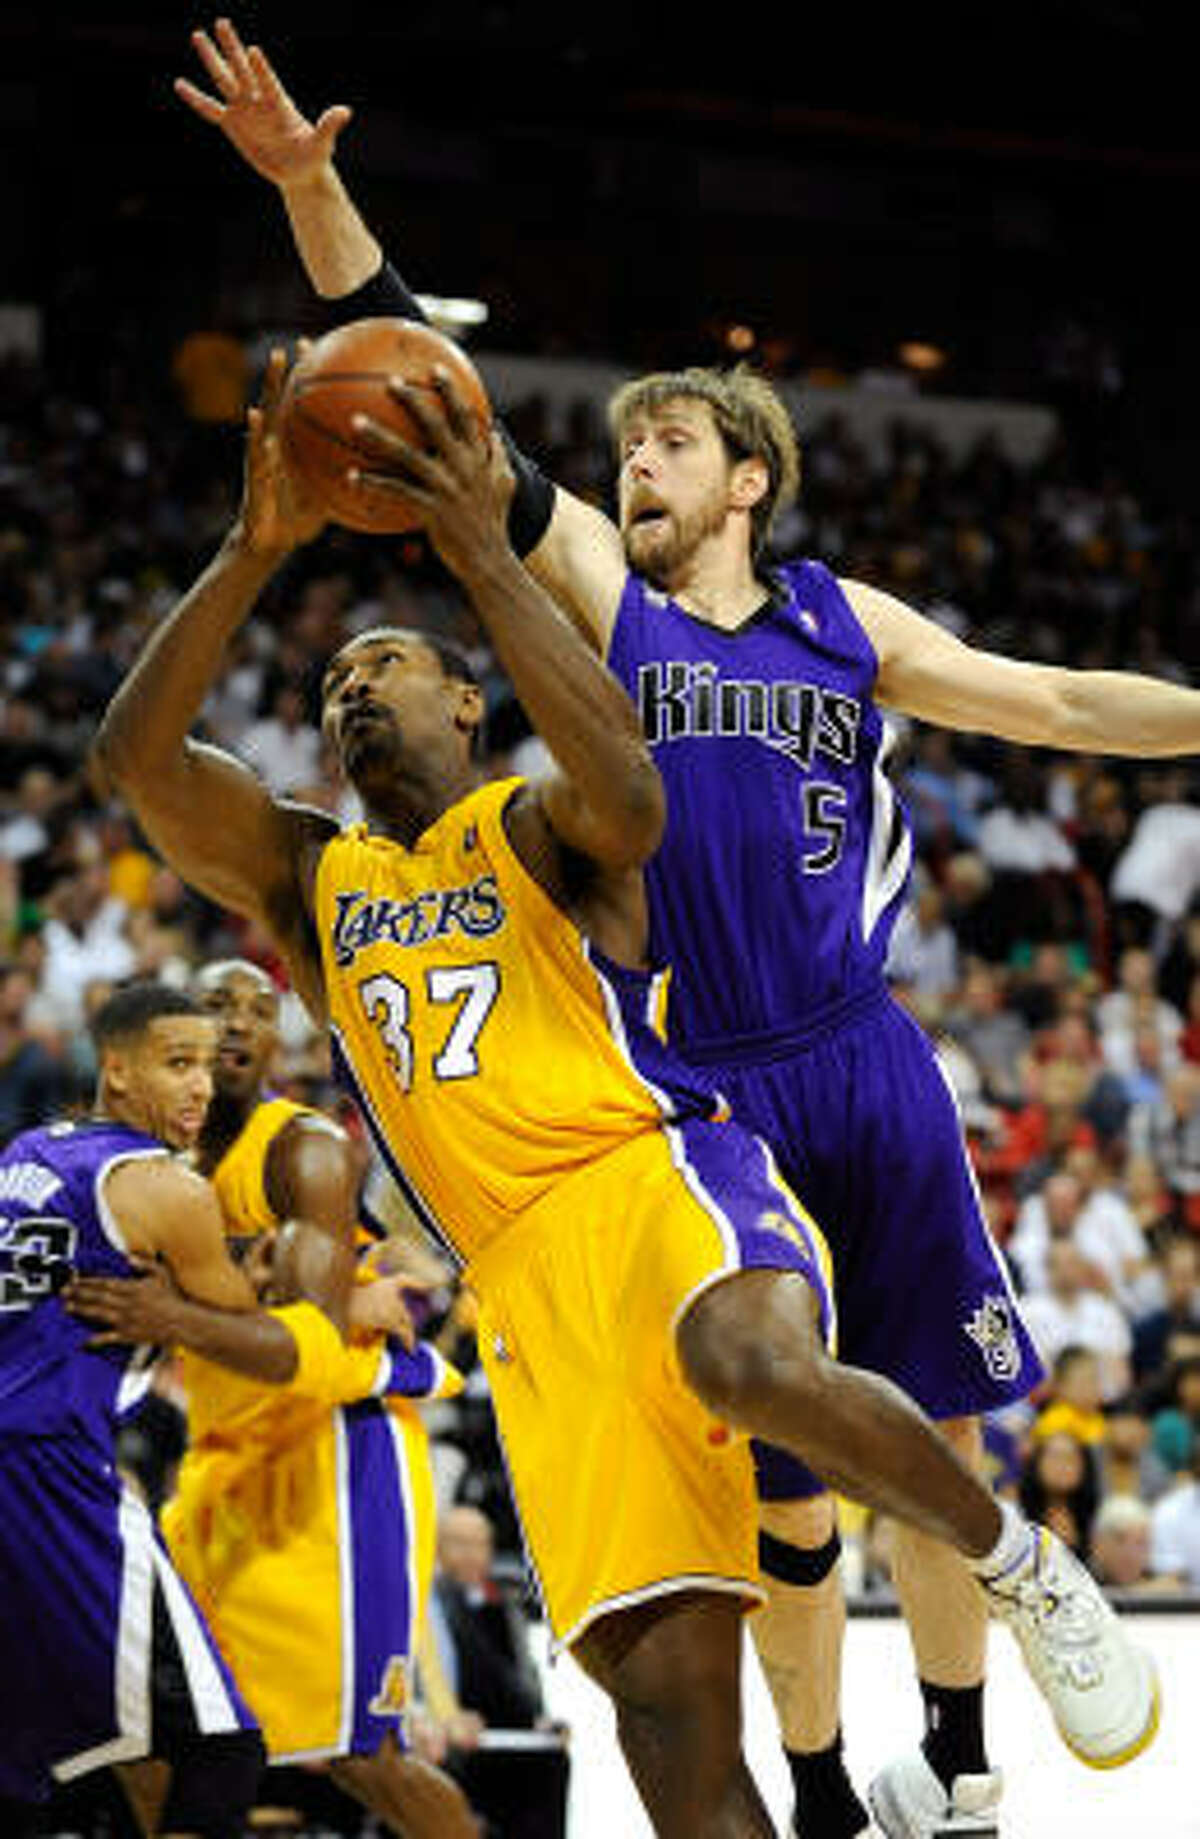 Los Angeles Lakers Former Rocket Ron Artest (37) joins Kobe and Co.'s quest to repeat as NBA champions. Predicted finish: 64-18 (first in Pacific and West).